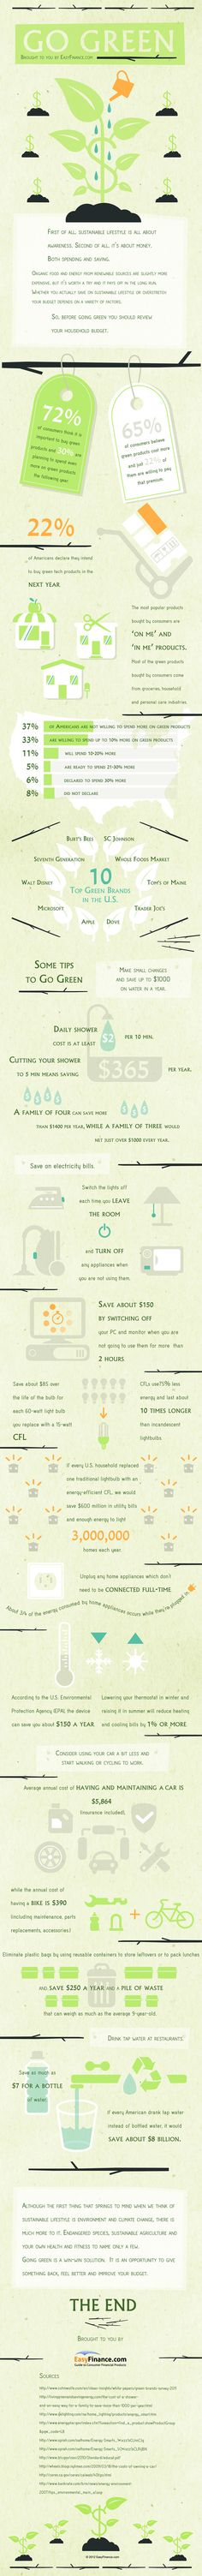 Ways to Go Green (Infographic)